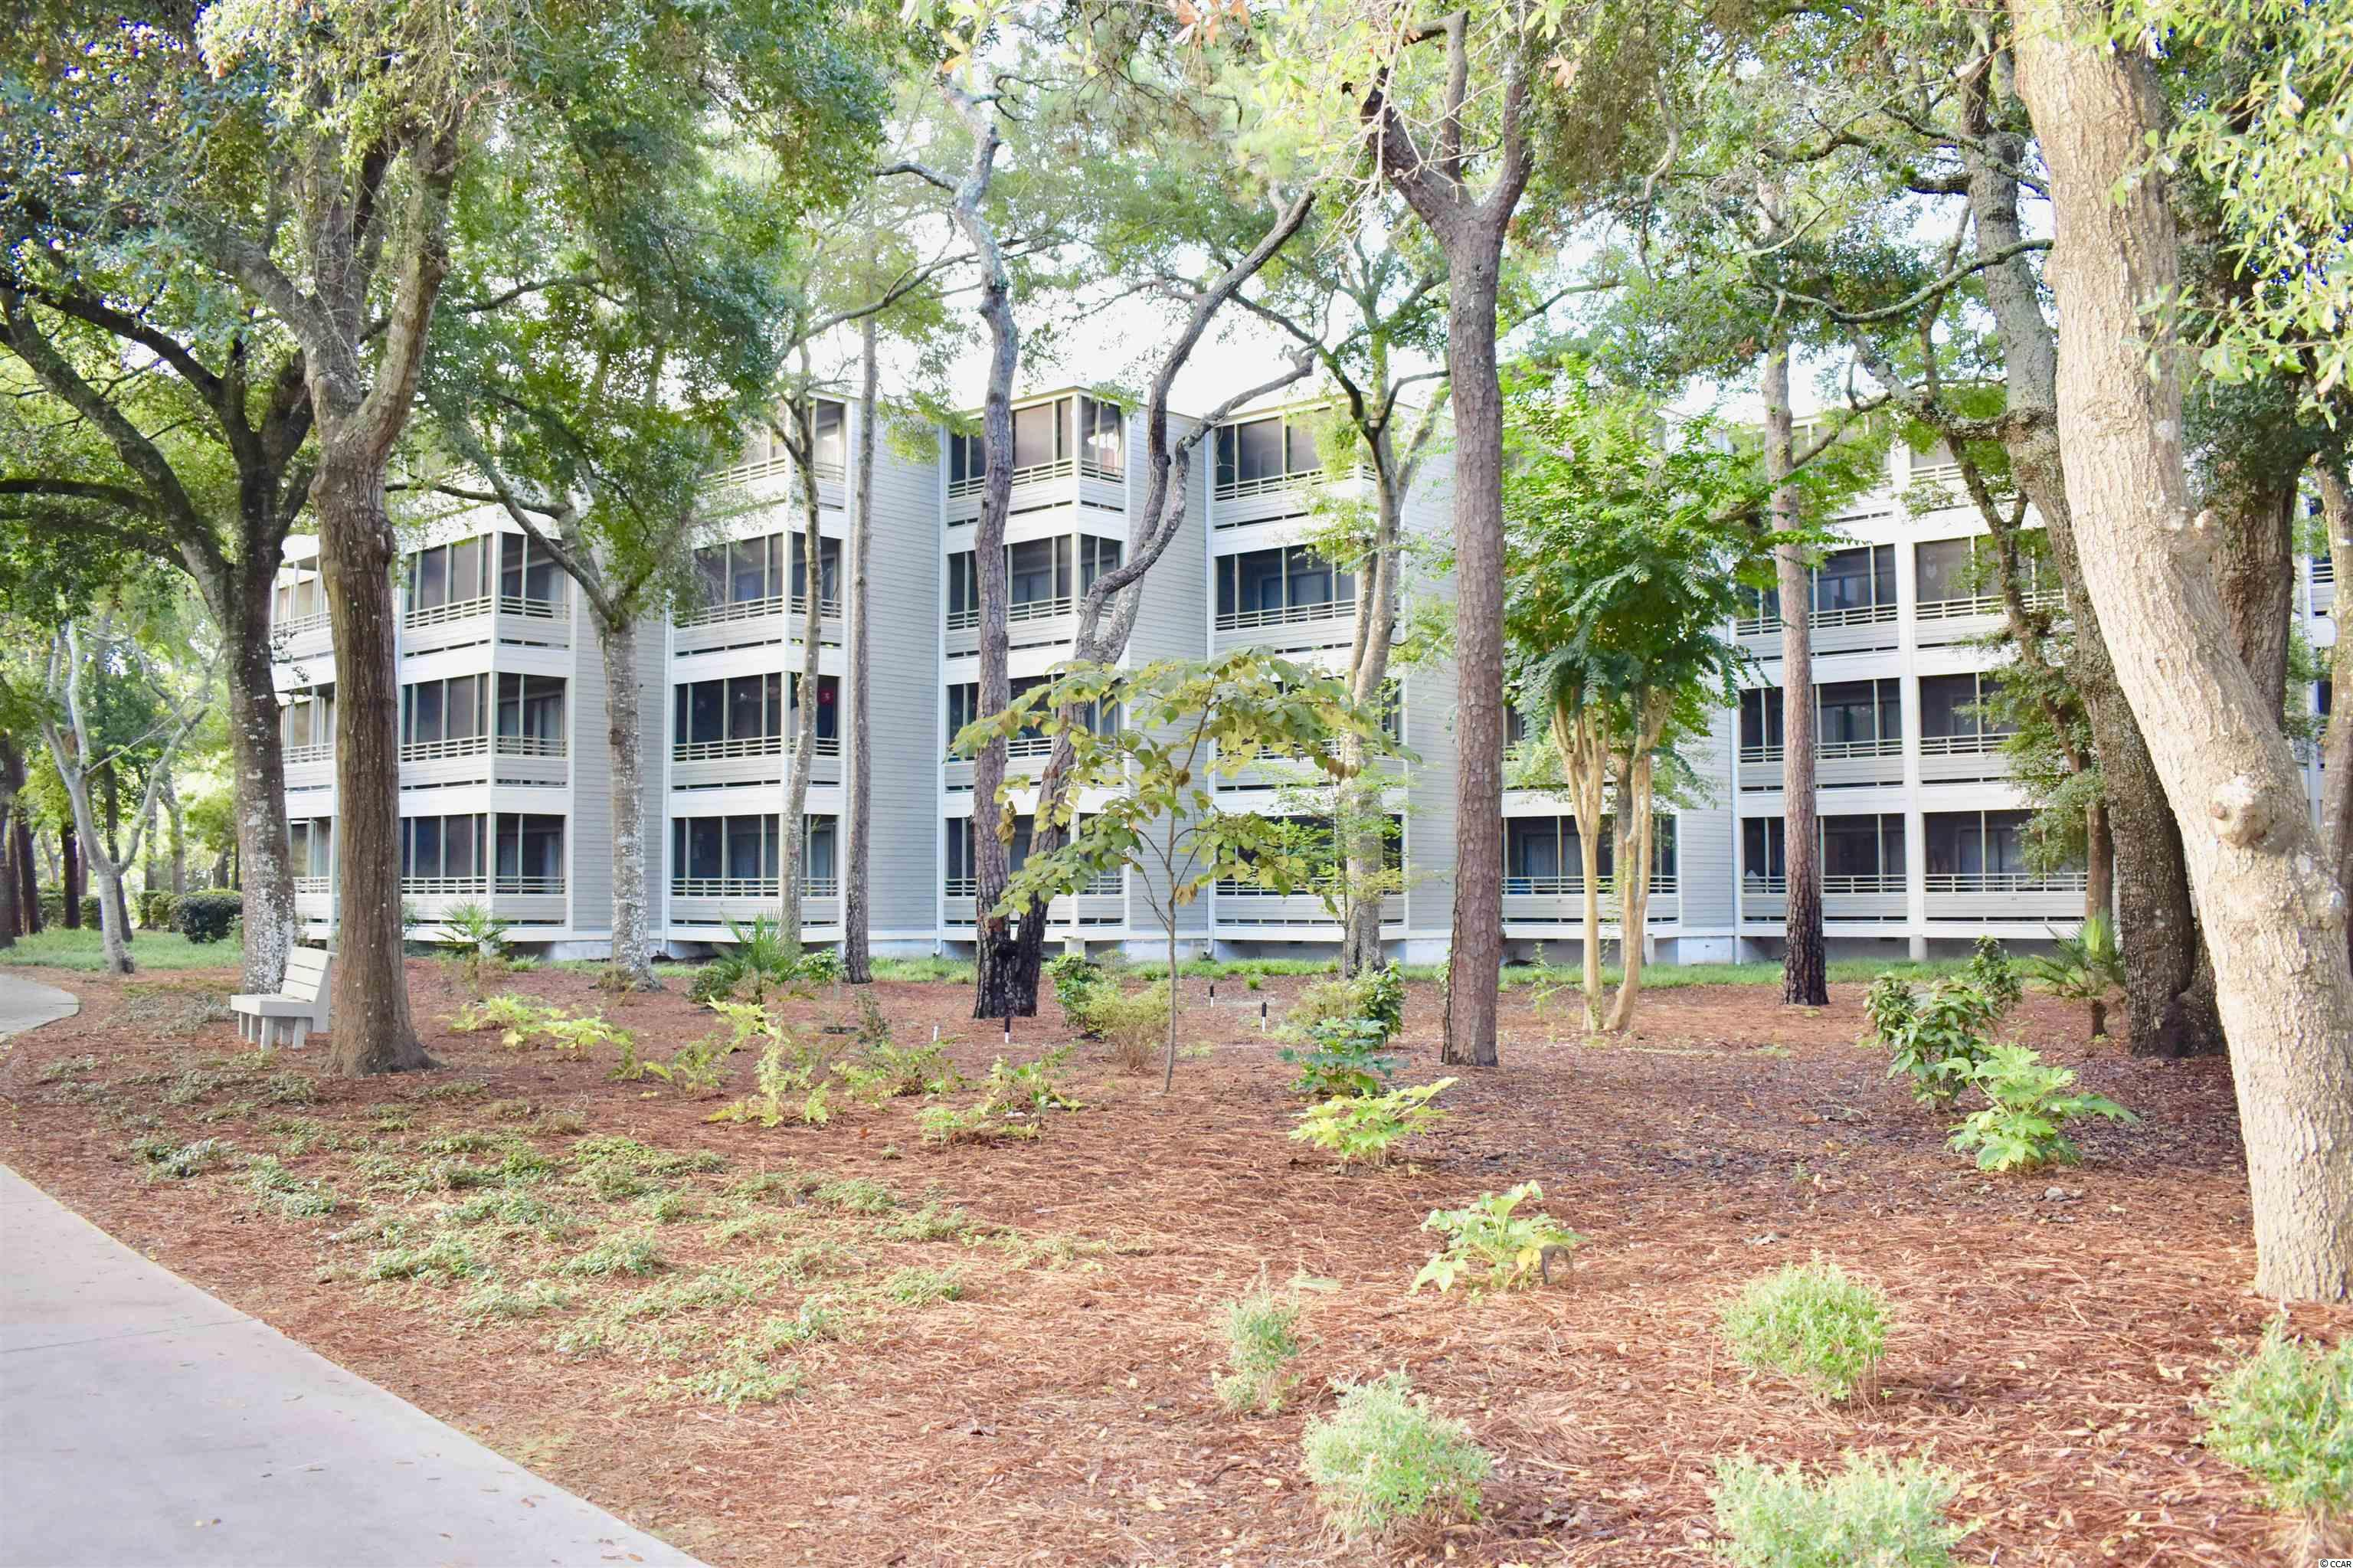 This 1 bedroom 1 1/2 bath condo is located in Ocean Creek Resort, a 57 acre sprawling beachfront resort in the Windy Hill section of North Myrtle Beach. This newly remodeled and tastefully decorated condo is on the first floor.  This condo does come furnished so all you need is a tooth brush and bathing suit.  The peaceful tranquility and sounds of the ocean from the private balcony will have you in love from the first time you open the door.  Ocean Creek features an indoor/outdoor swimming pool and large oceanfront pool decks, as well as a beachfront volleyball facility and playground.